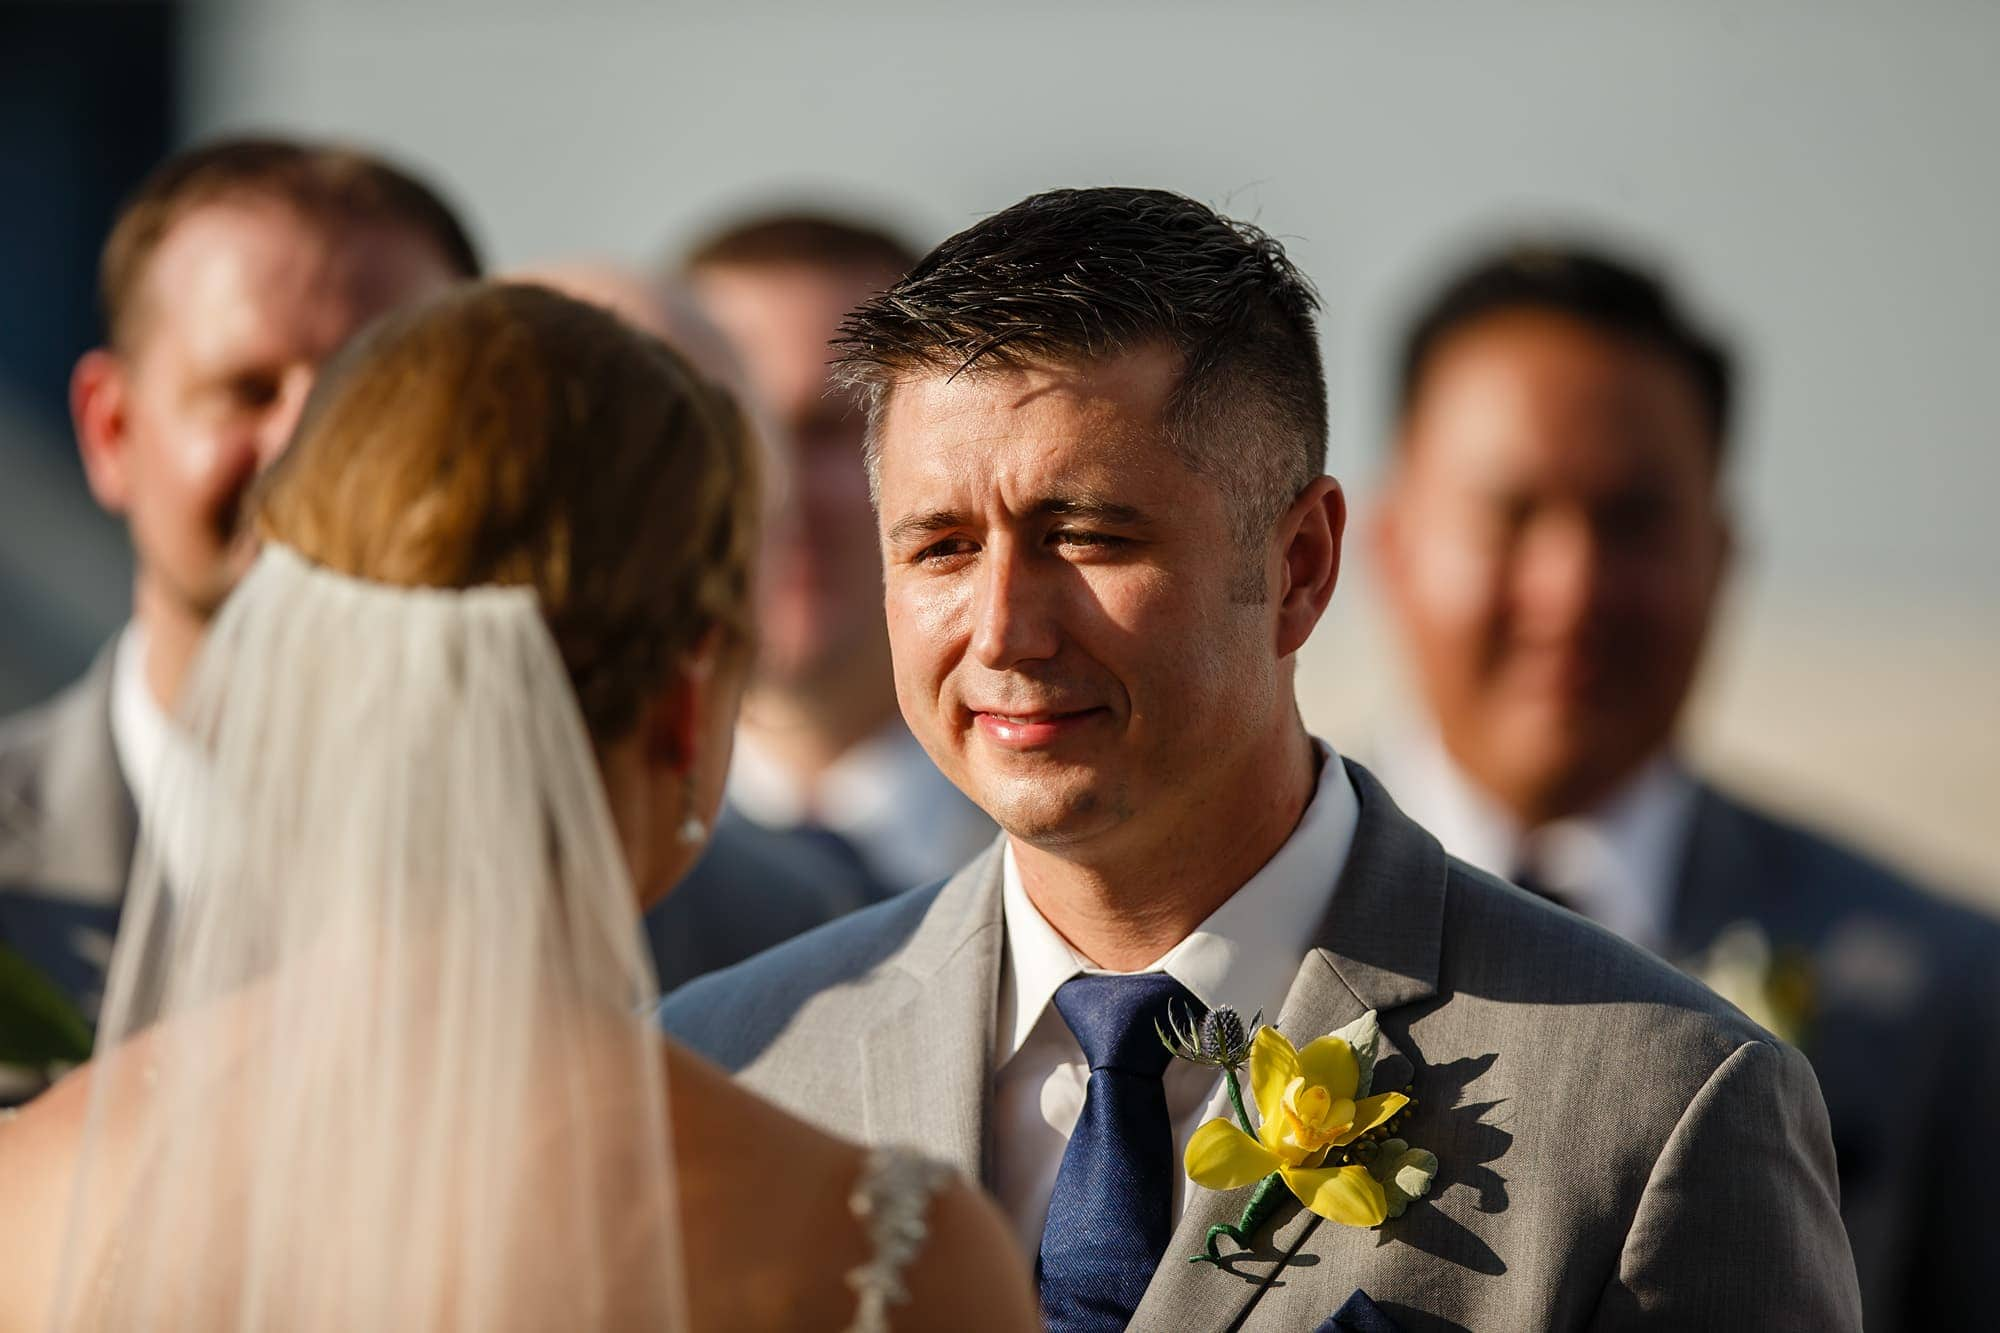 A groom looks into the brides eyes at the Denver Museum of Nature and Science